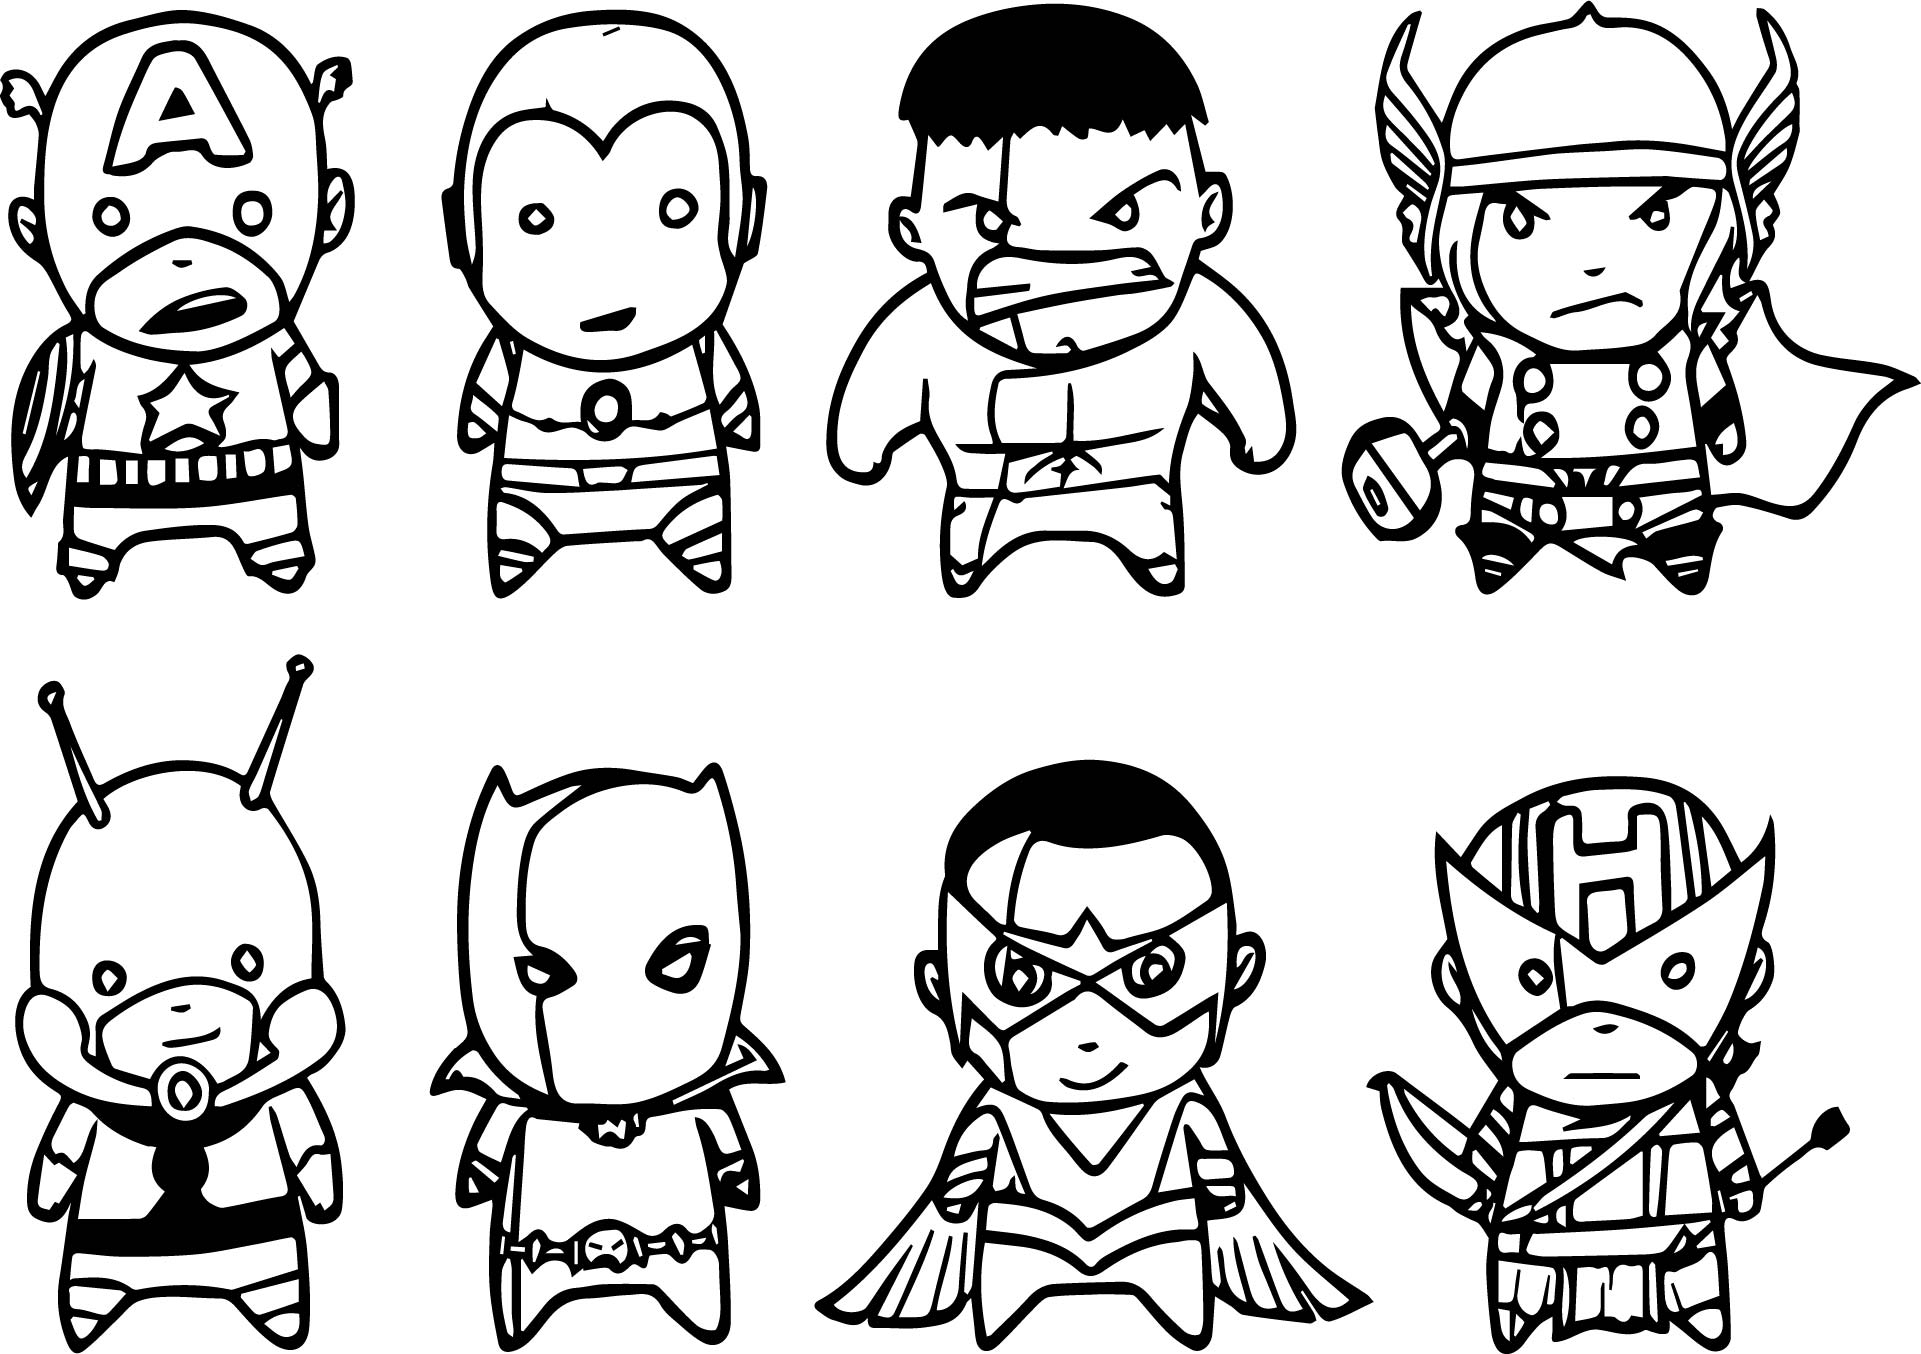 avengers for coloring coloring pages for kids free images iron man avengers for coloring avengers